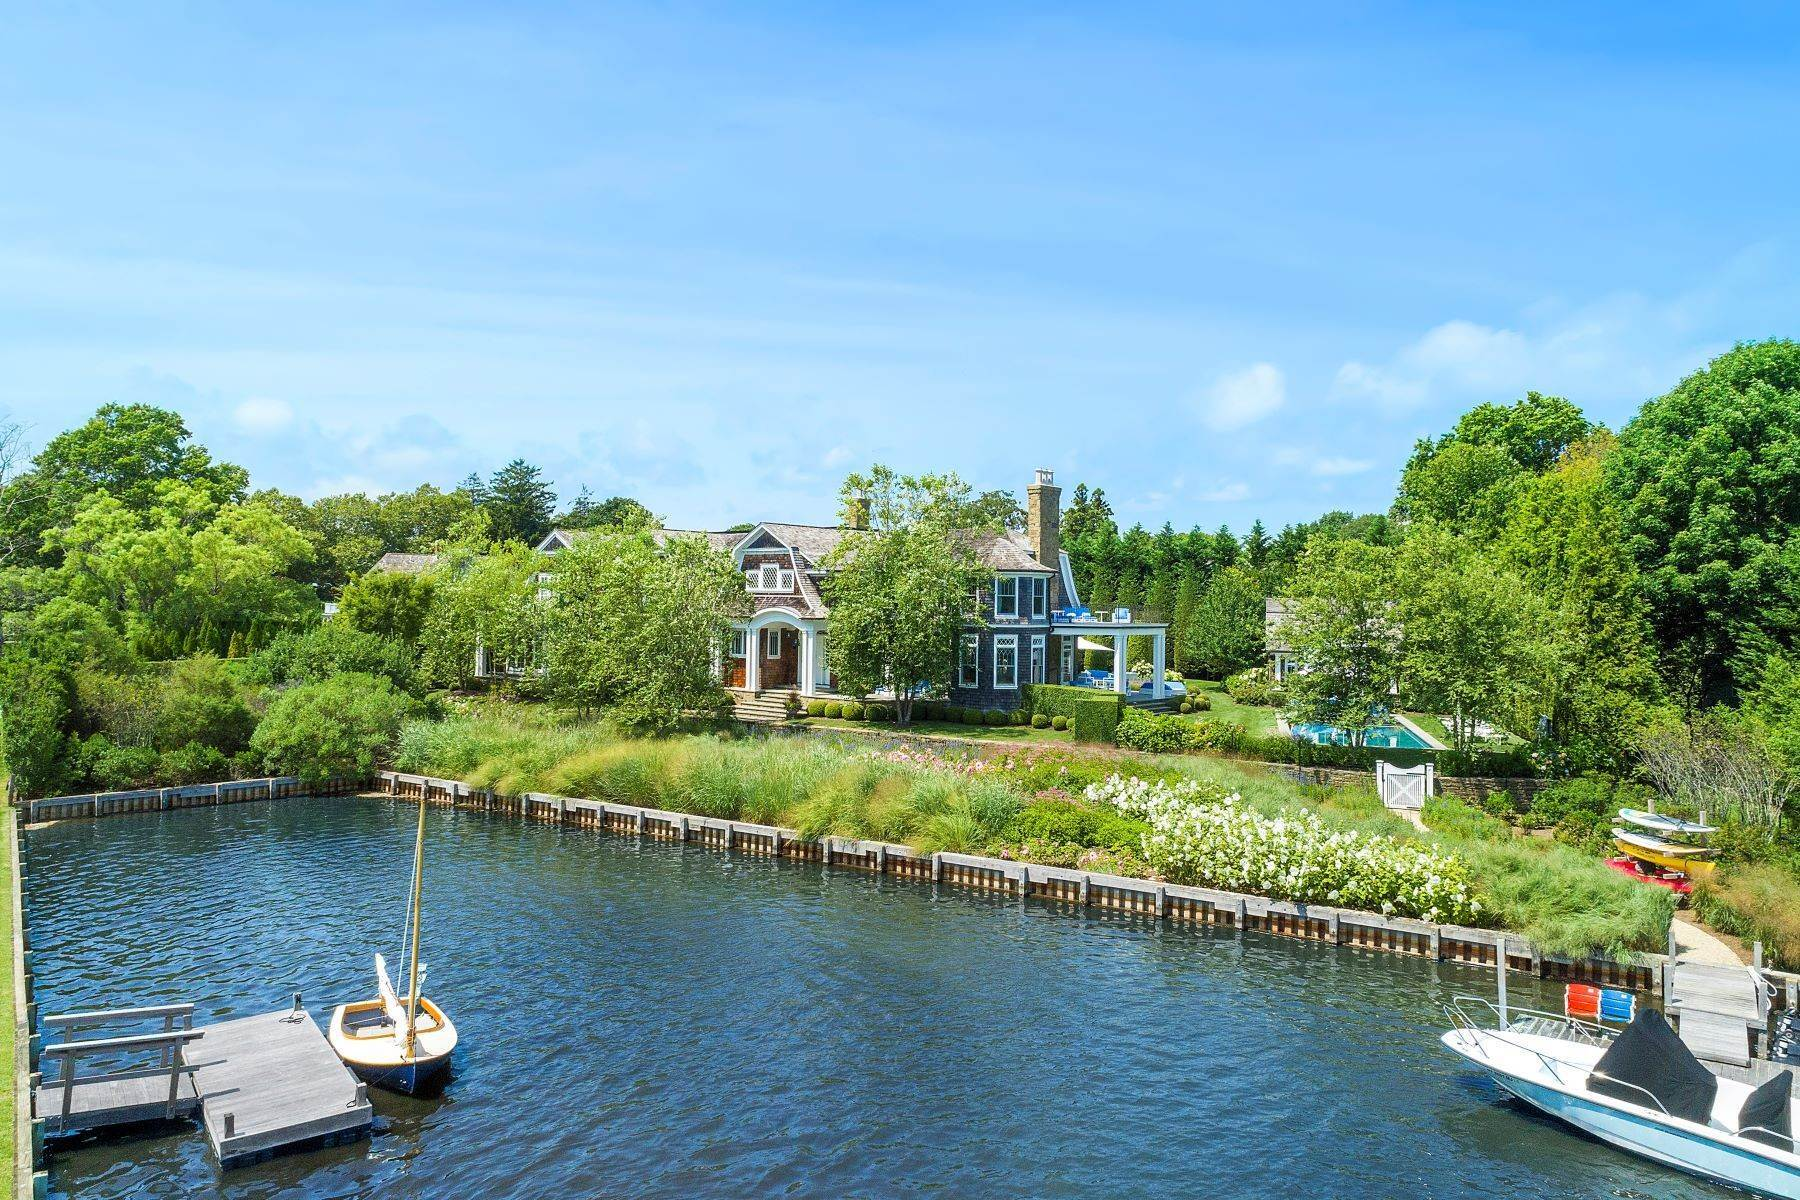 Single Family Homes for Sale at Water Mill Waterfront 29 Cobb Isle Road Water Mill, New York 11976 United States